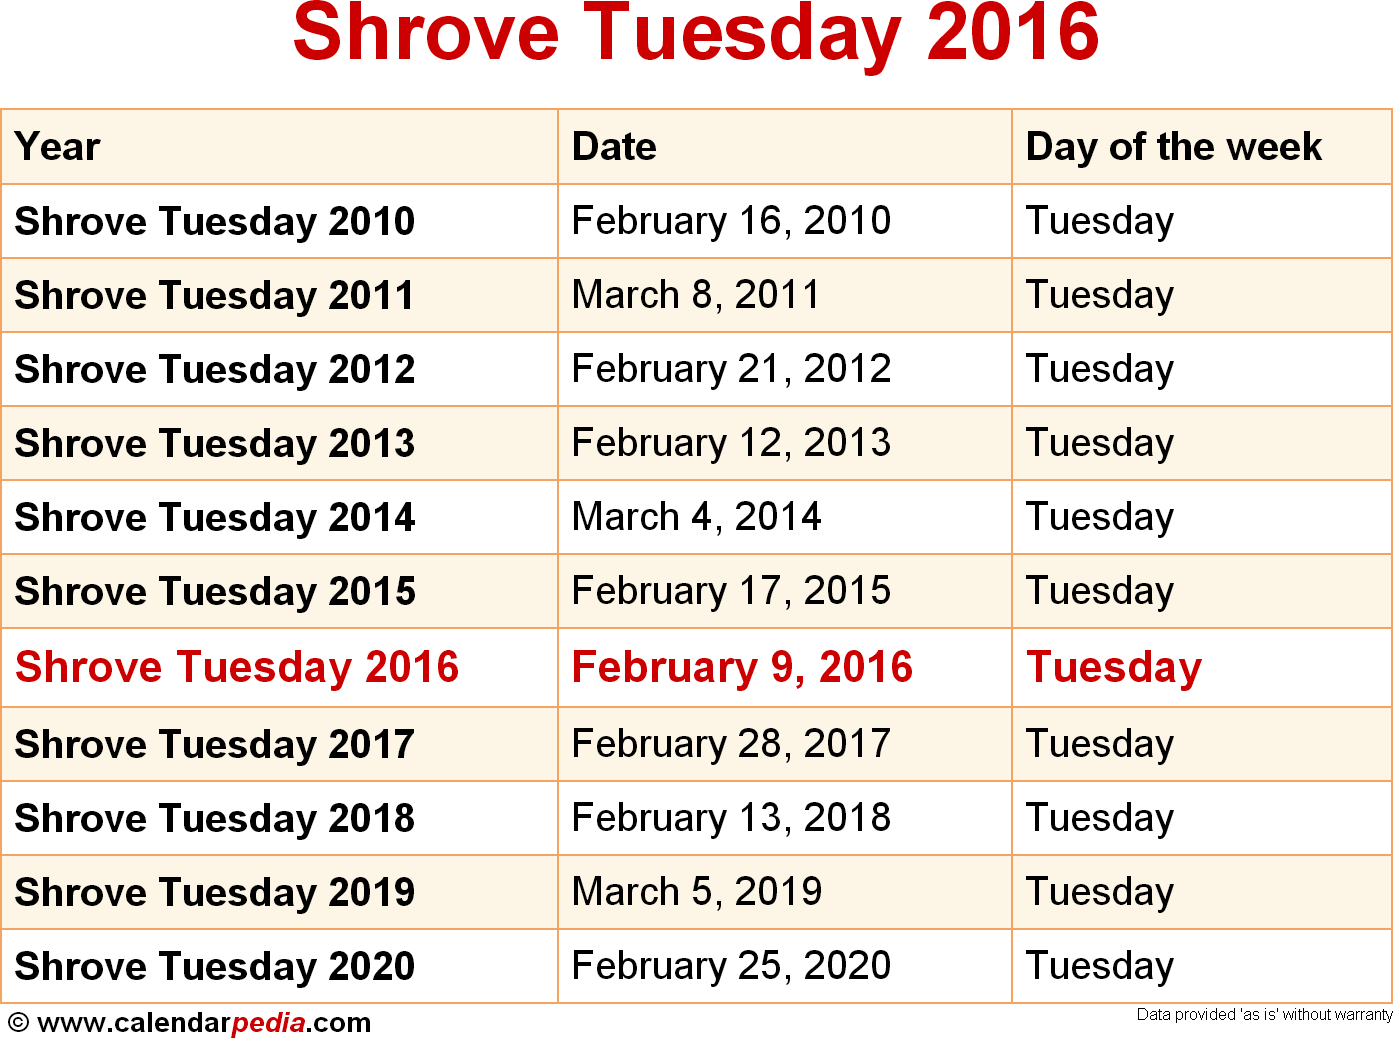 When is Shrove Tuesday 2016 & 2017? Dates of Shrove Tuesday